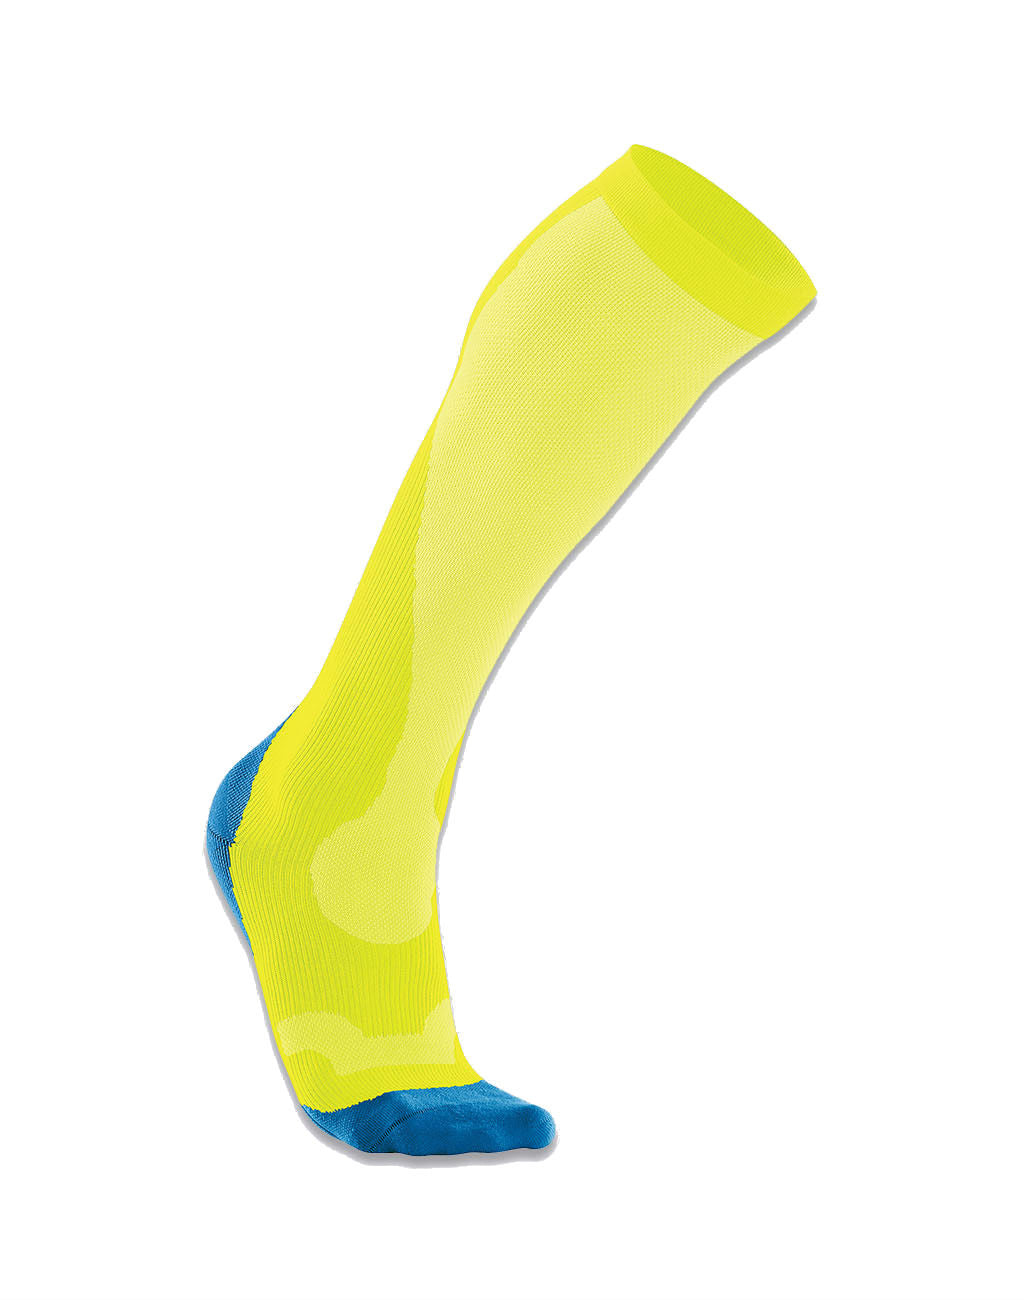 2XU Compression Run Socks (Men's)Fluoresent Yellow_master_image